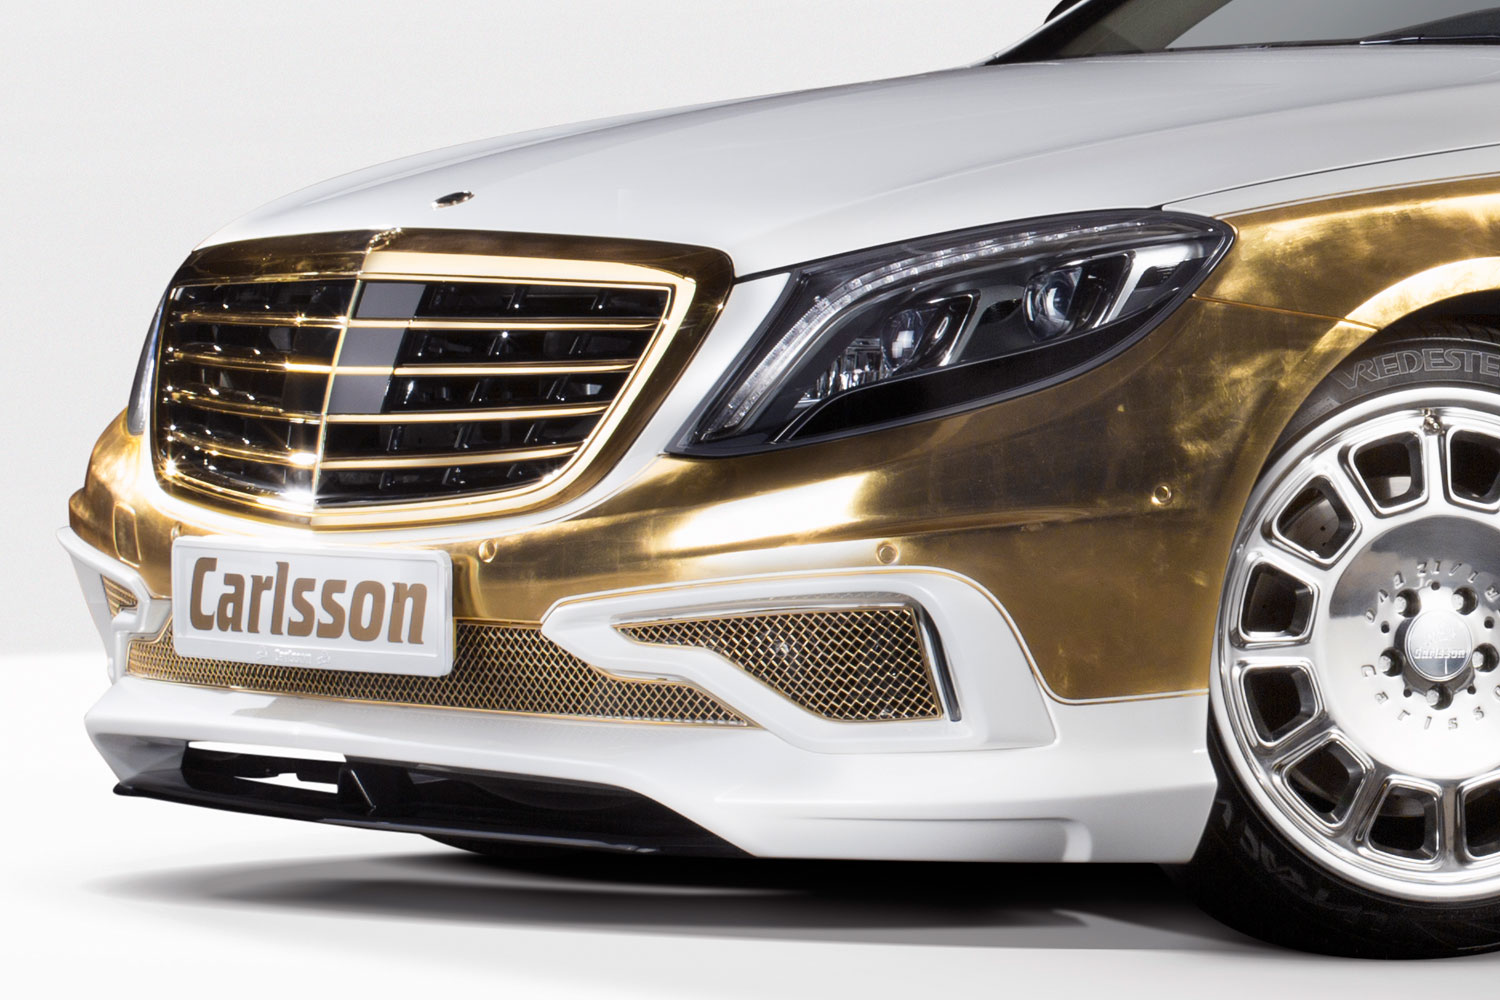 Carlsson Cs50 Versailles Is A Very Expensive Toy For Chinese